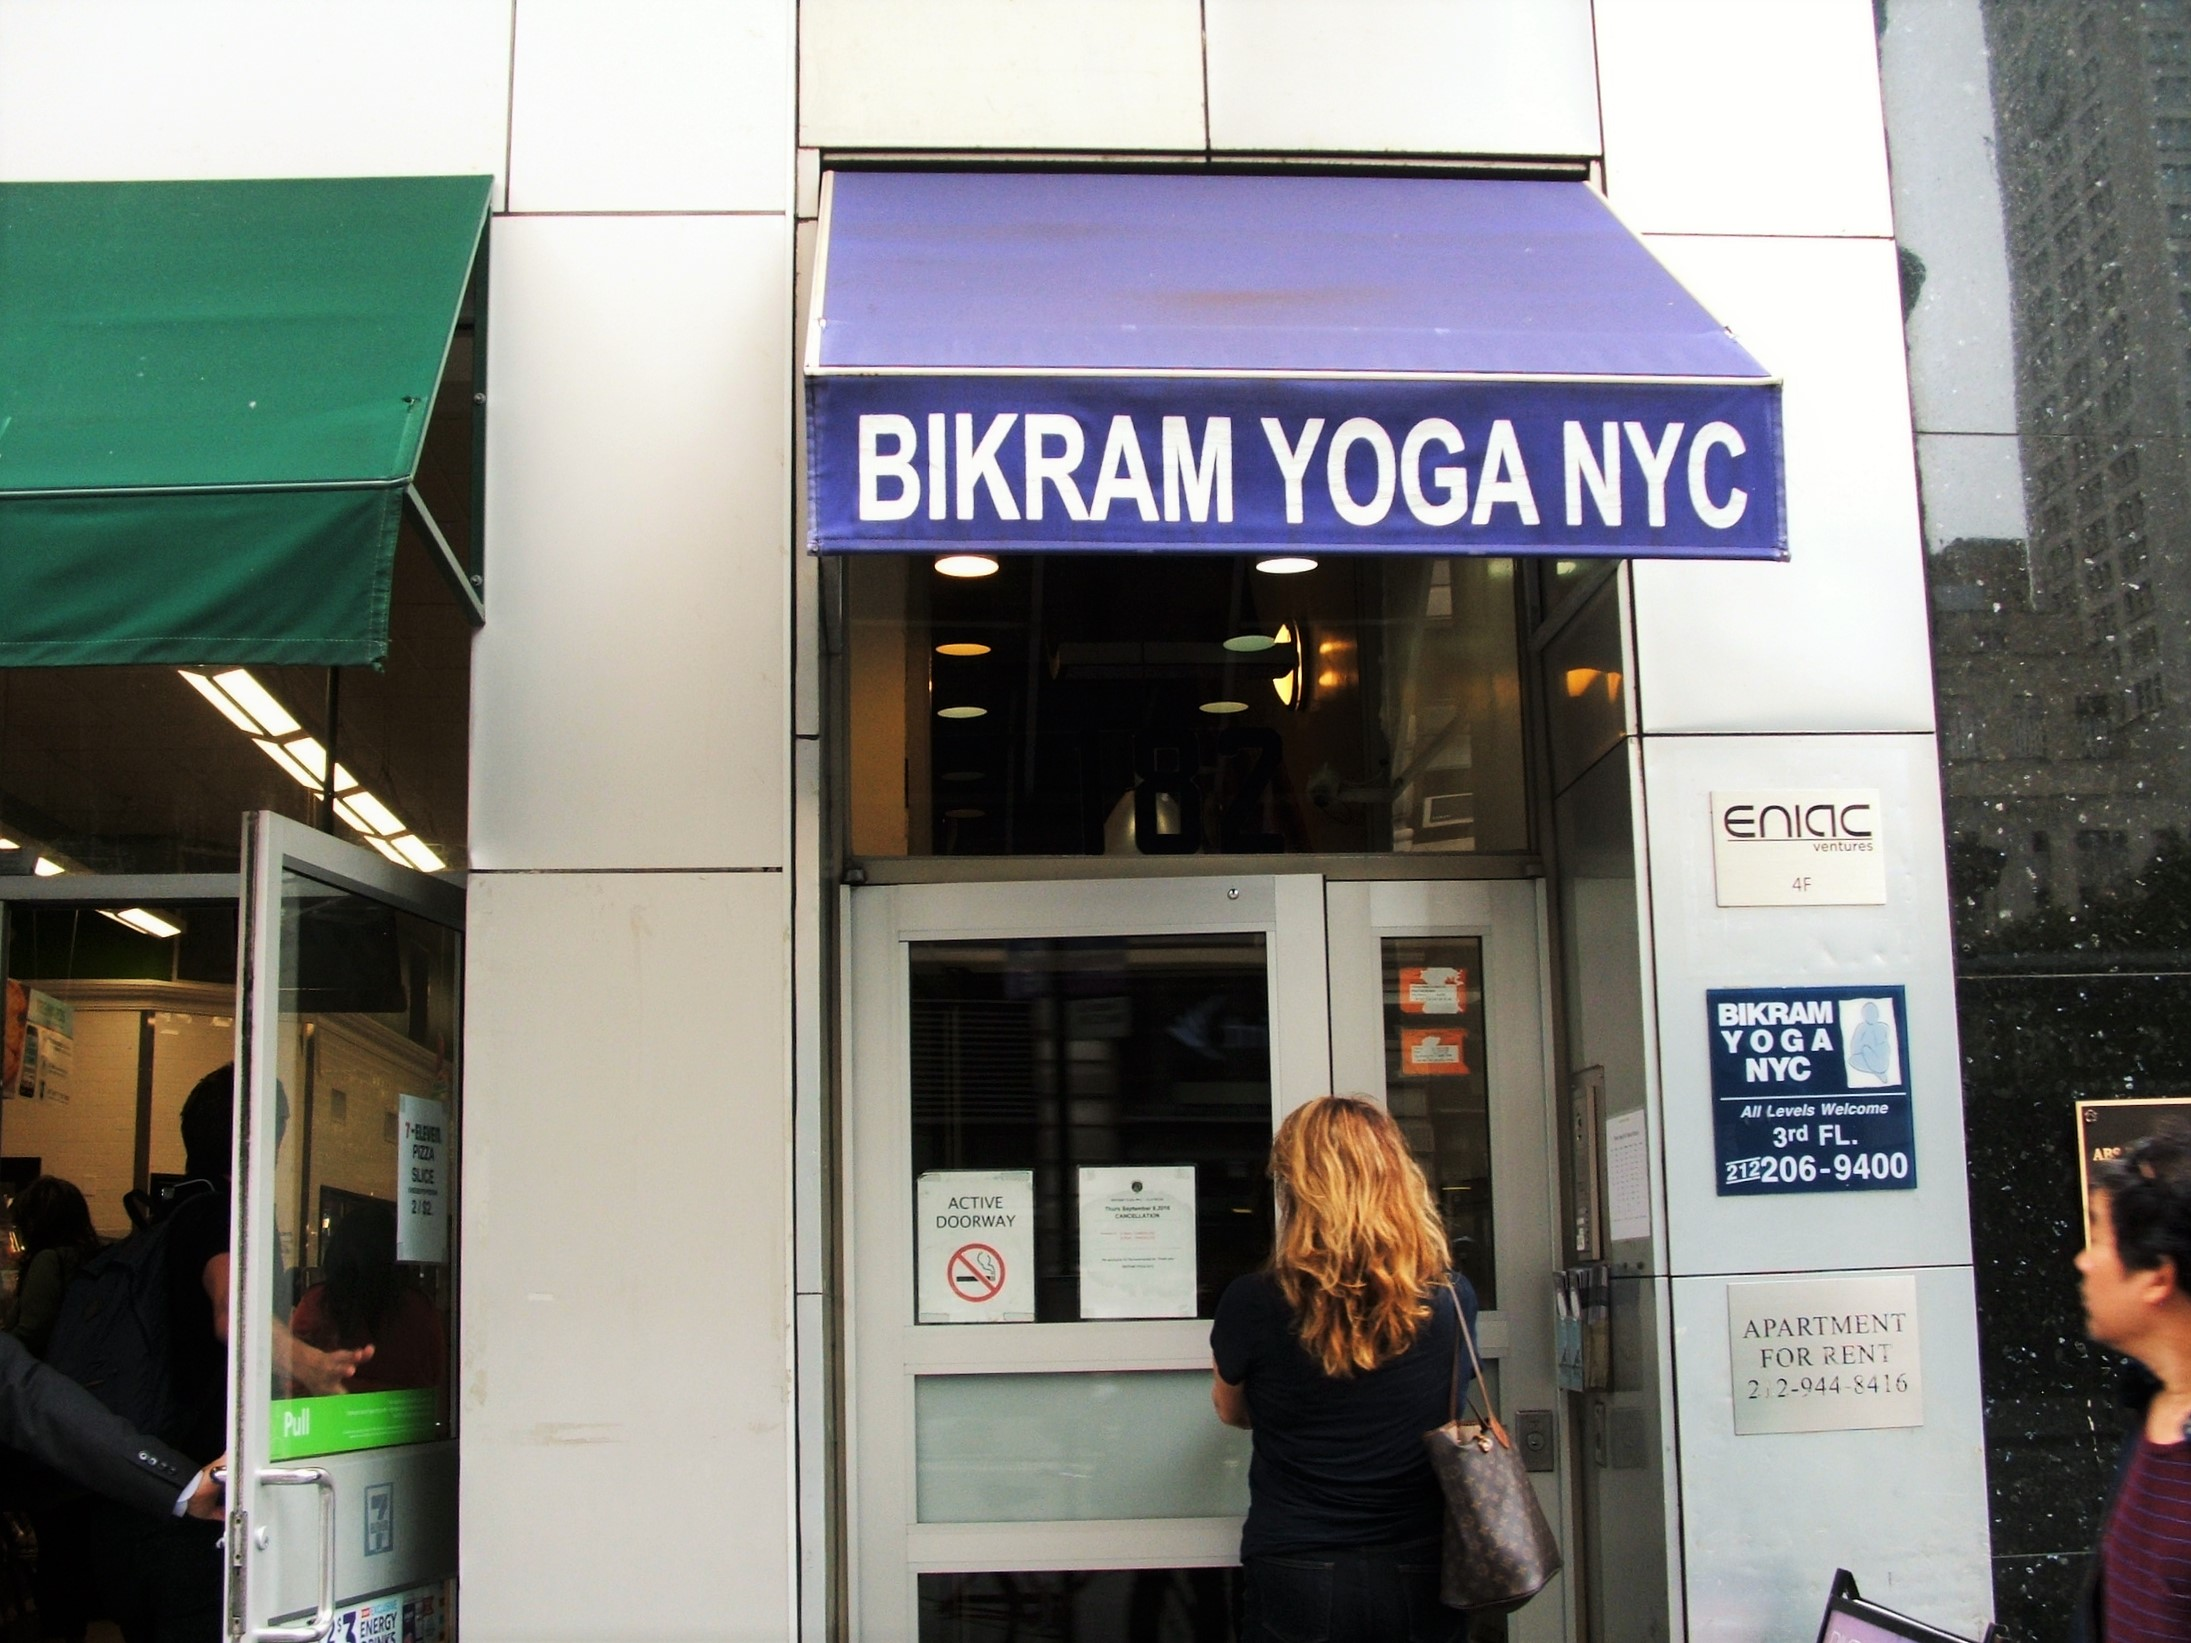 A Bikram Yoga studio...right next to a 7 Eleven on the corner of the W 23rd St's thoroughfare and 5th Ave.